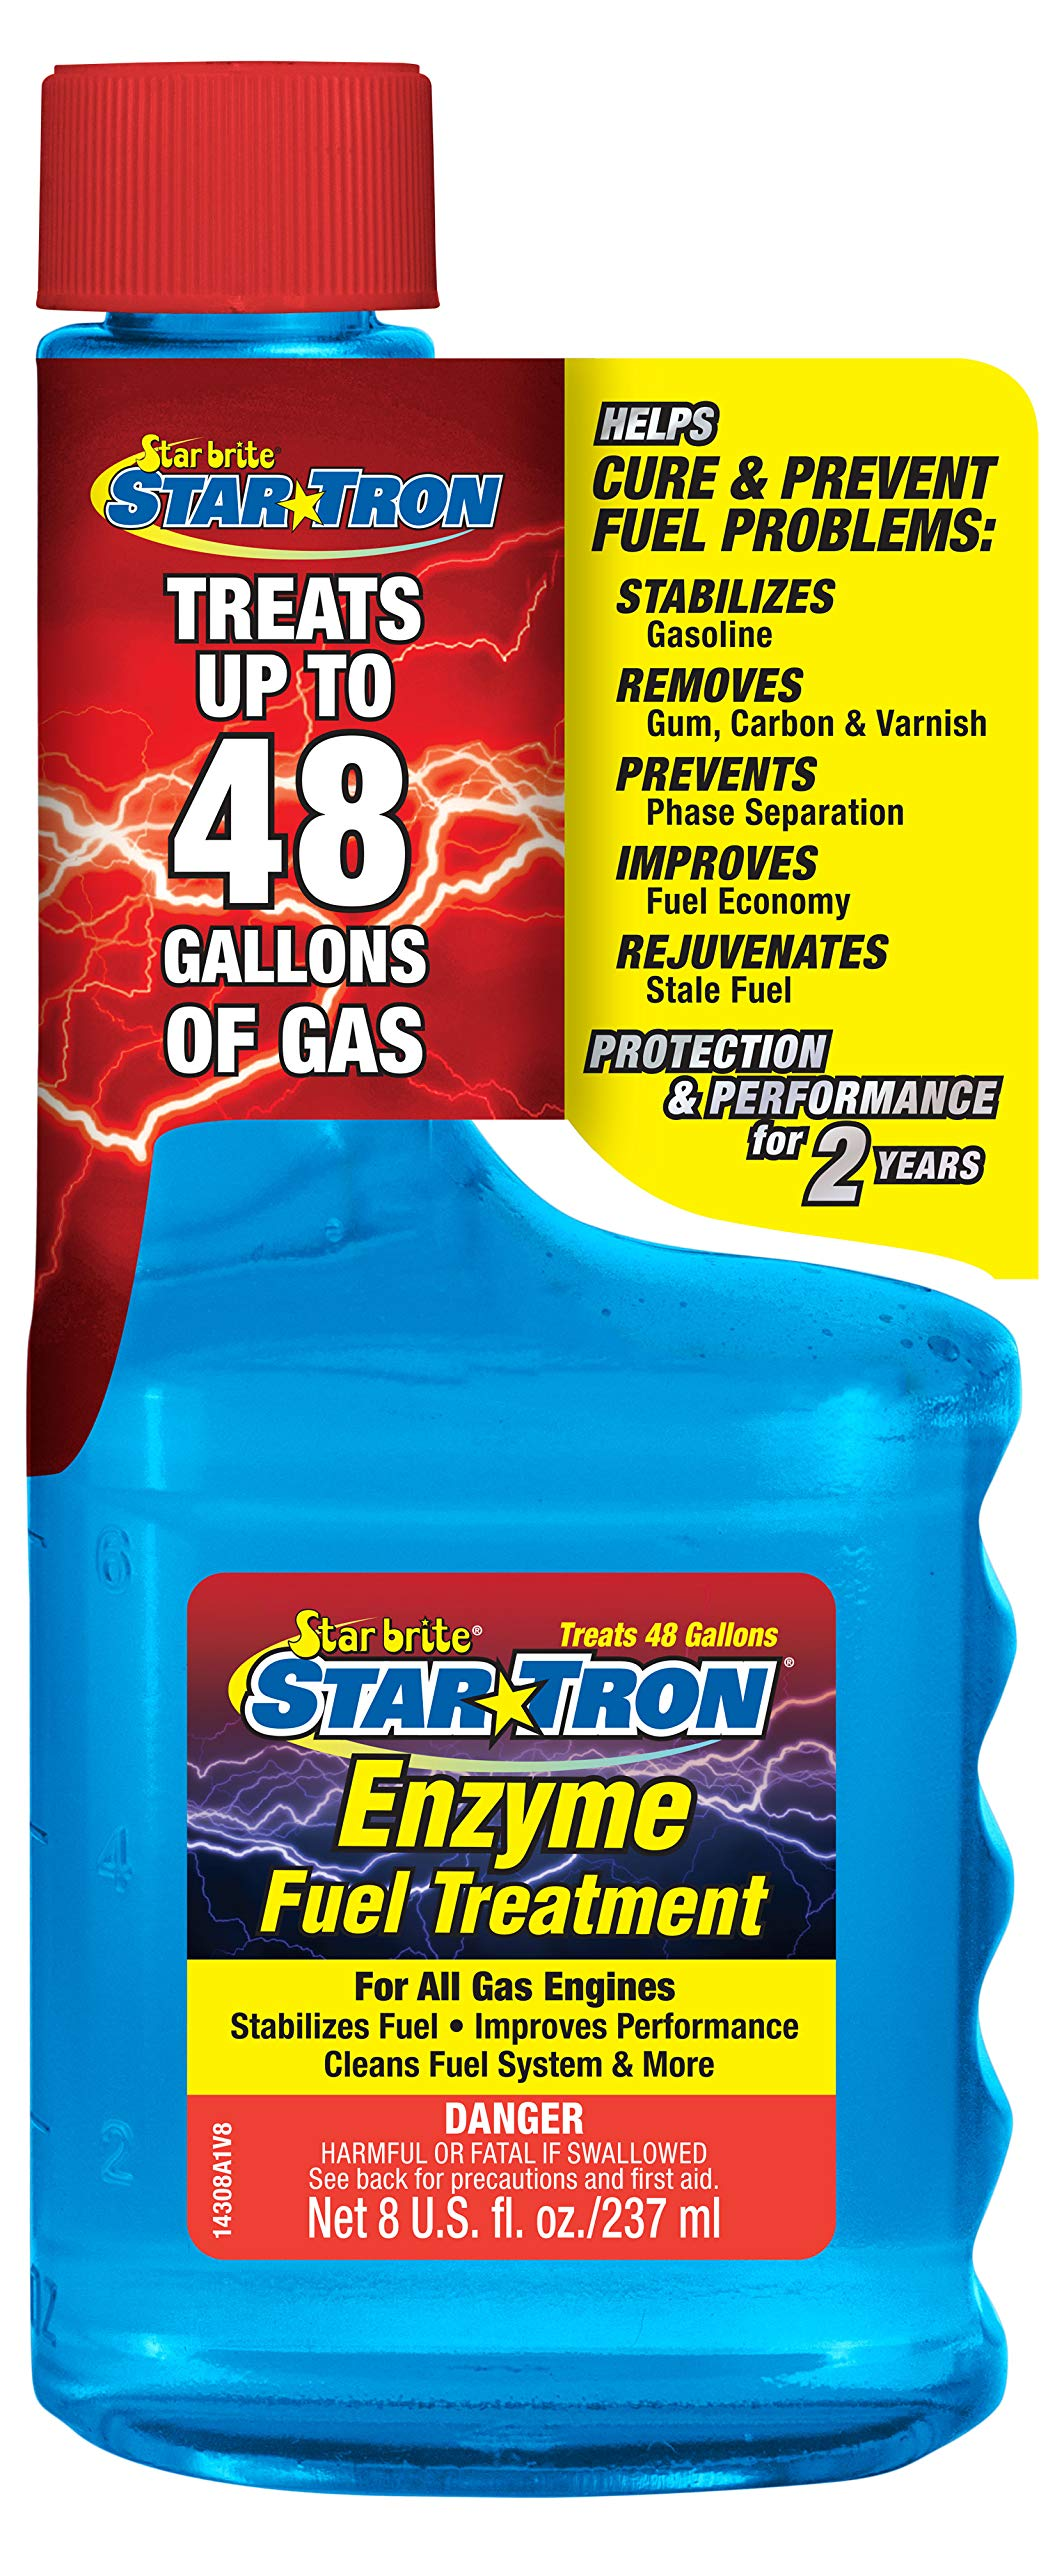 Star Tron Enzyme Fuel Treatment - Gas Formula 8 oz - Treats 48 Gallons by Star Brite